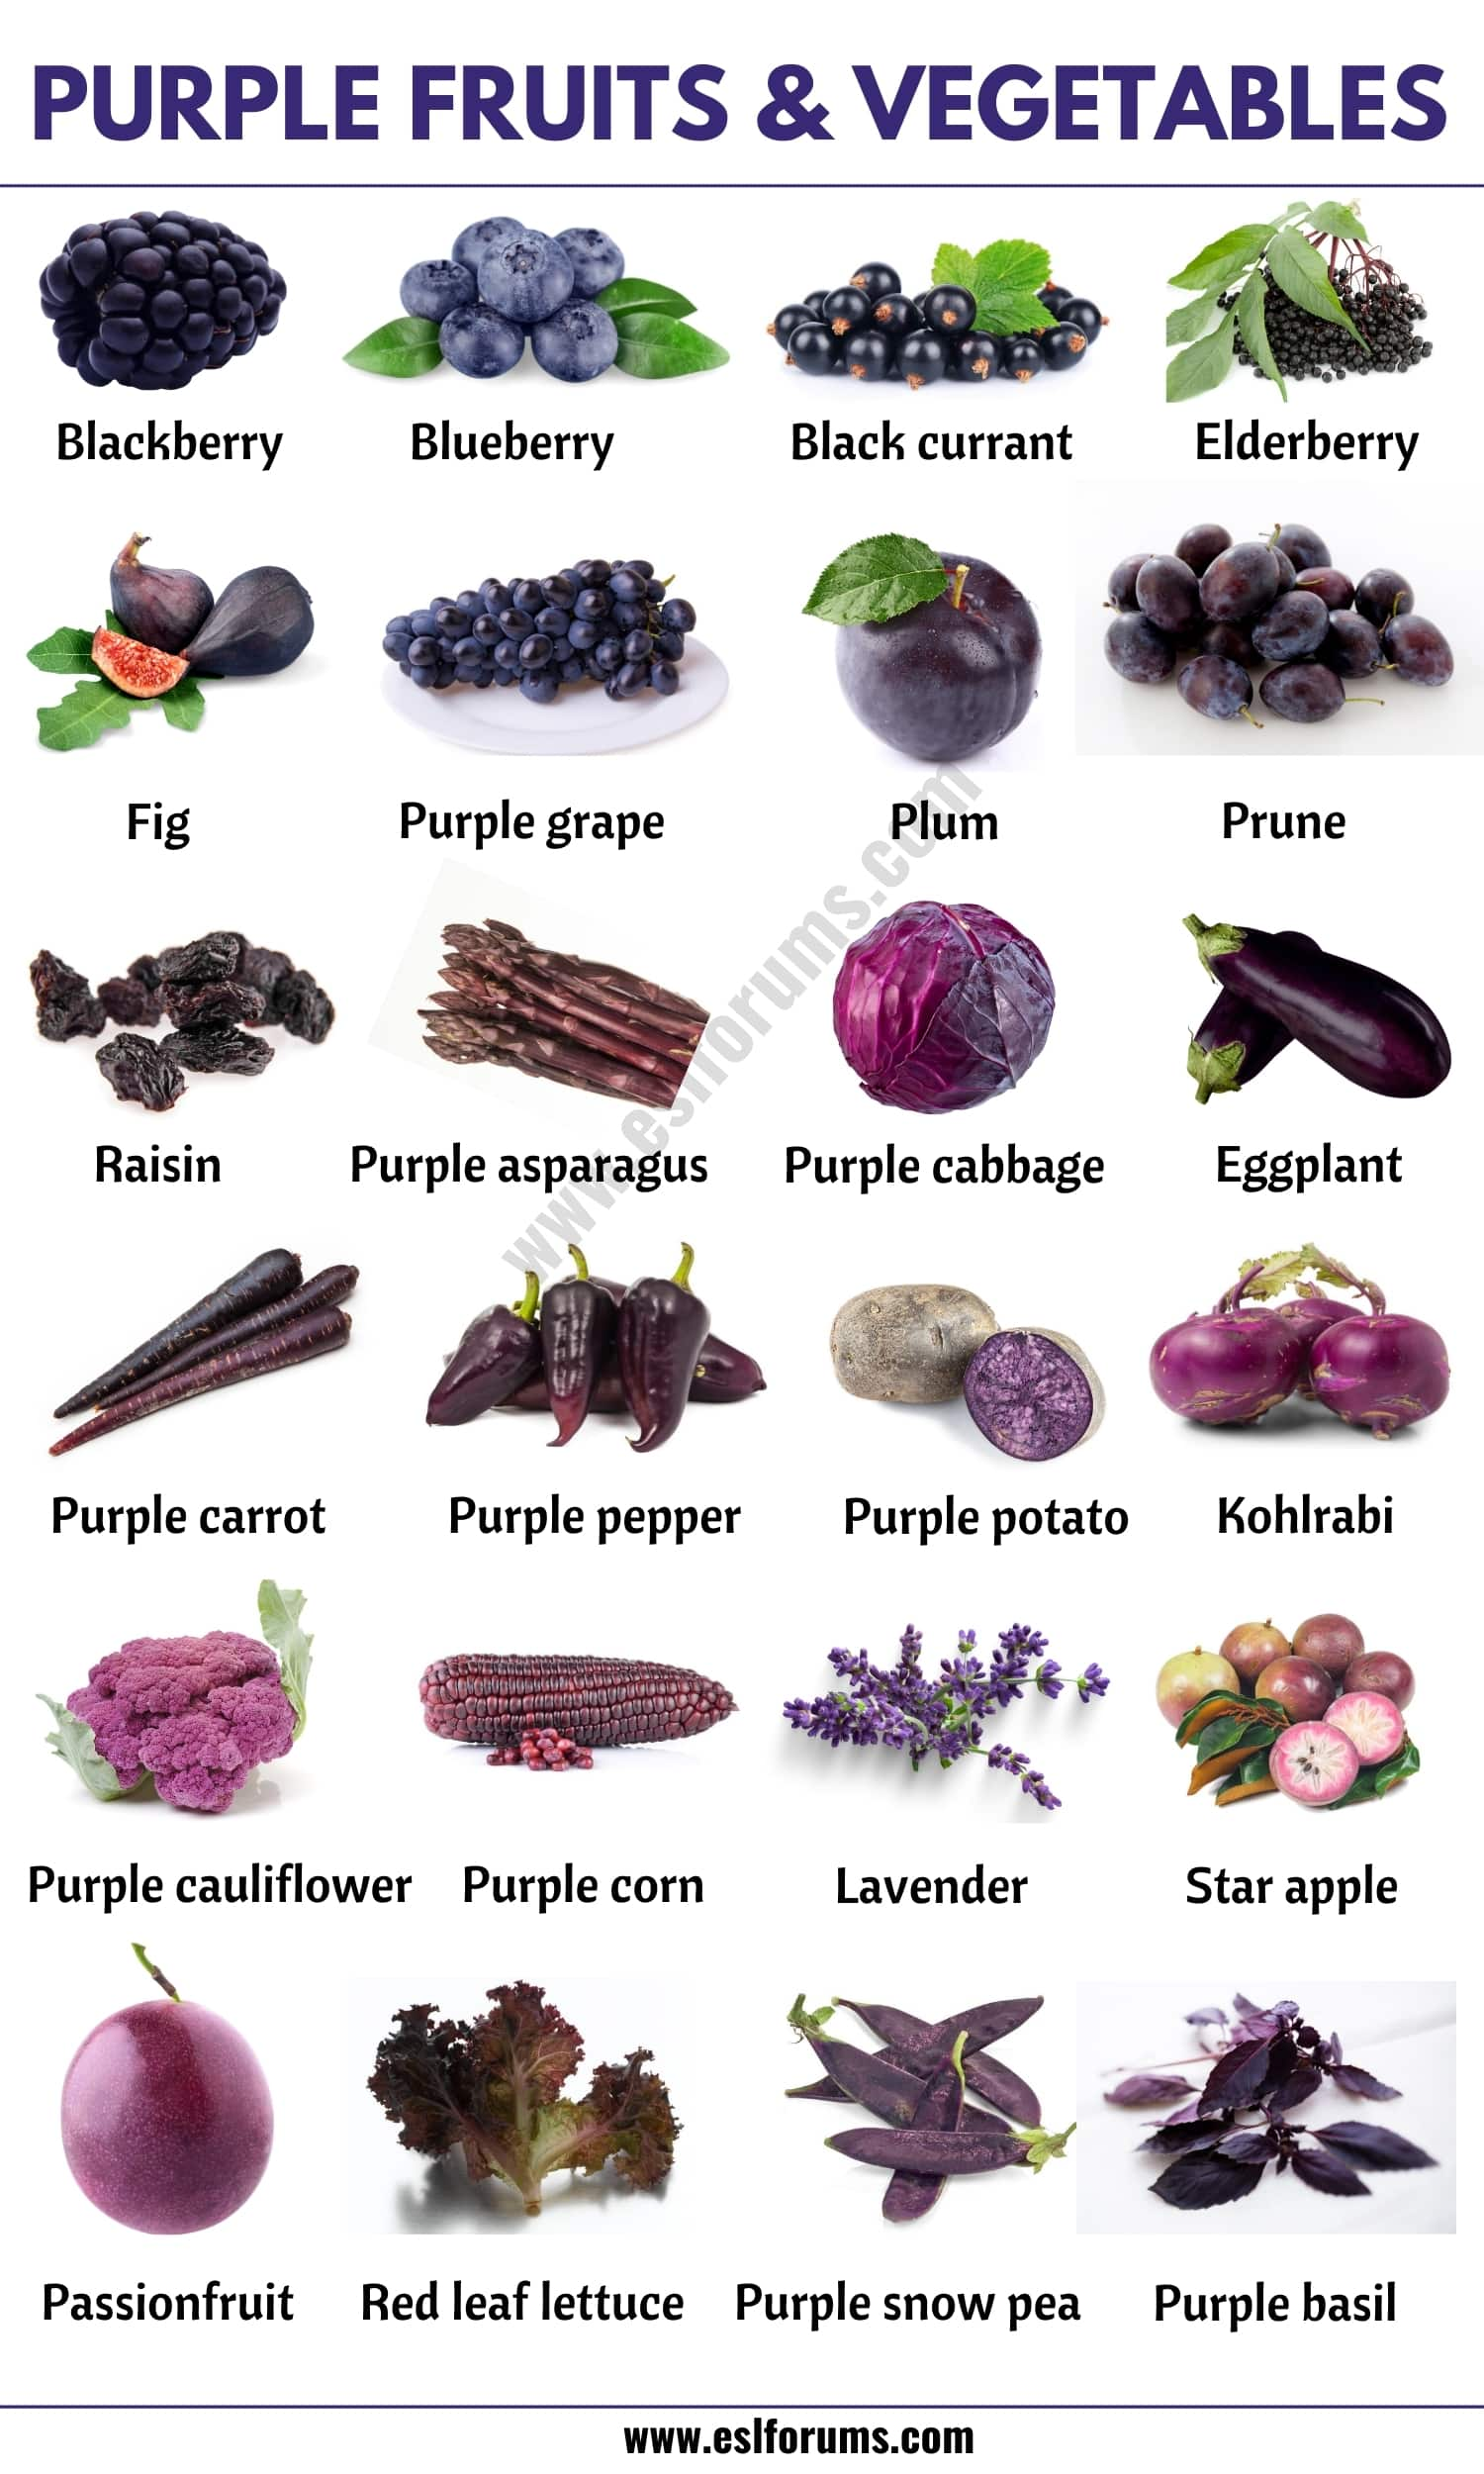 Purple Vegetables: List of 24 Purple Fruits and Vegetables in English